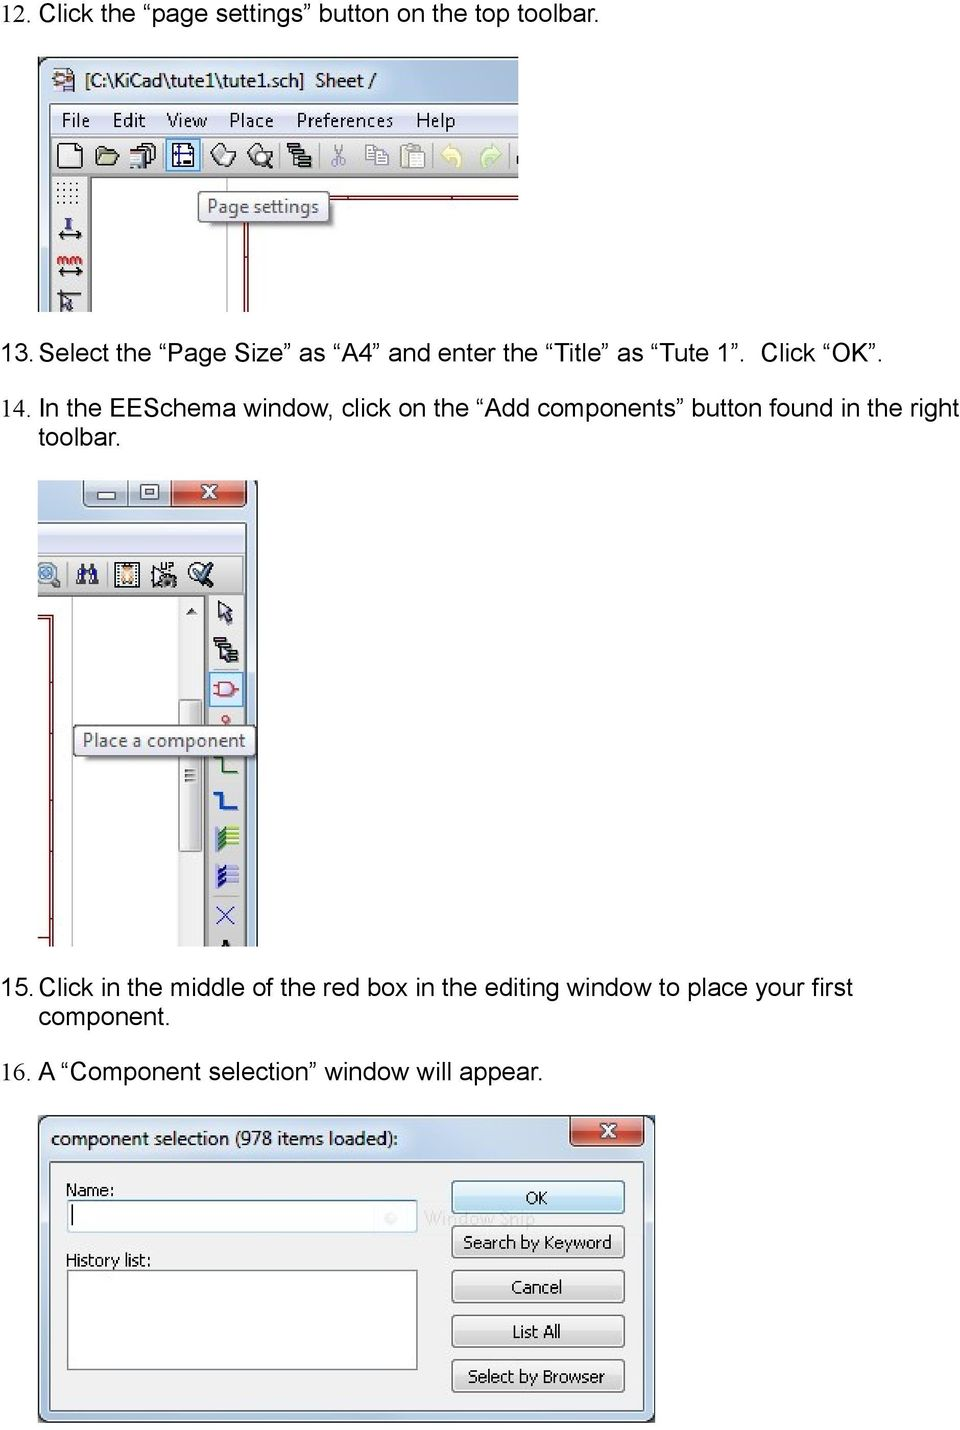 In the EESchema window, click on the Add components button found in the right toolbar.